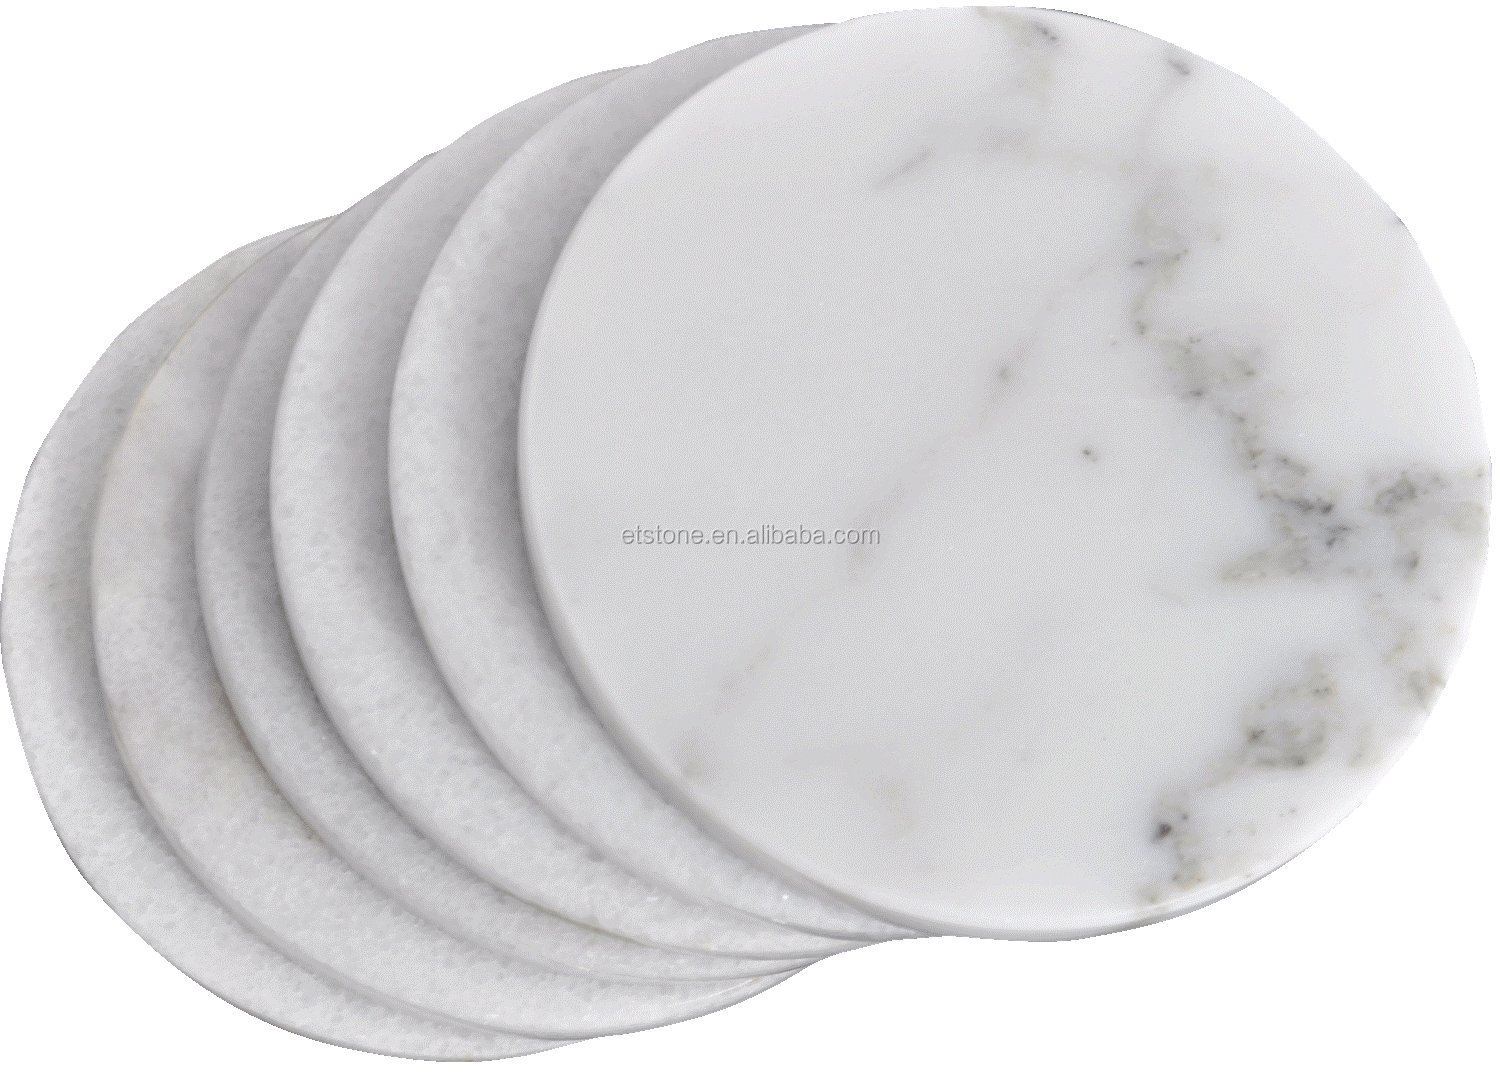 Cup Mat Tableware Accessories Natural Stone Slate Coaster Stone Coaster from China